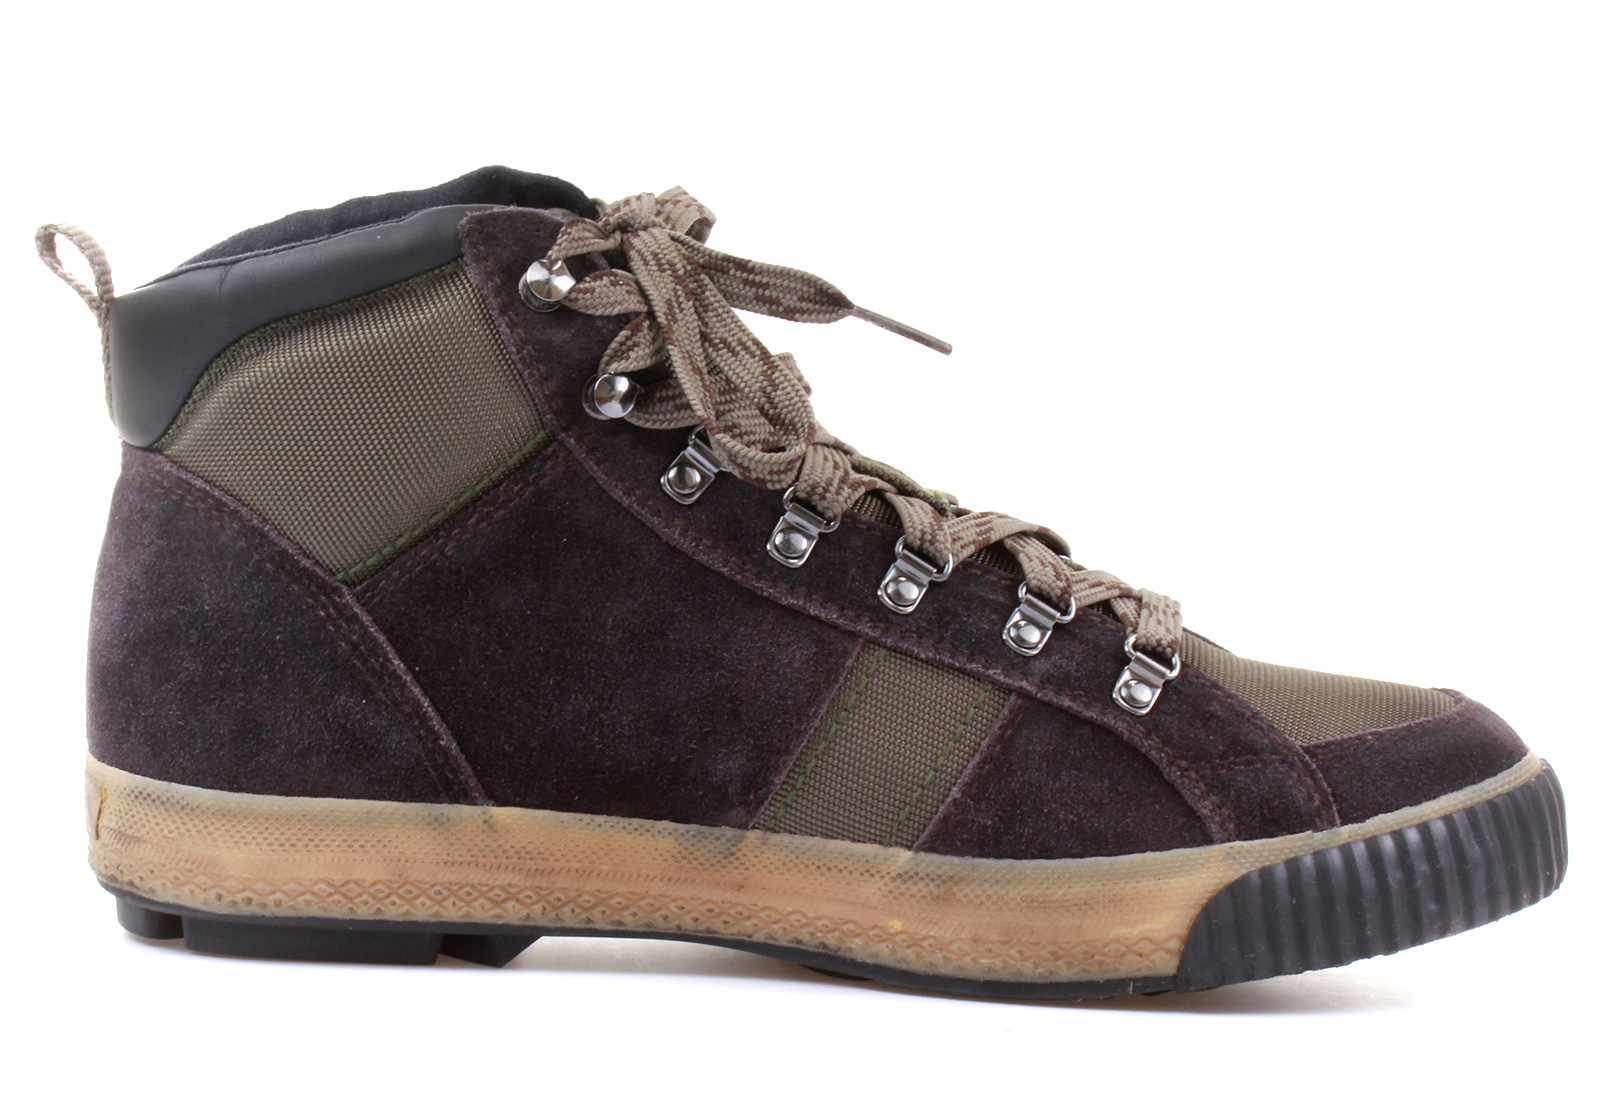 Diesel Shoes Wil 806 118 8010 Online Shop For